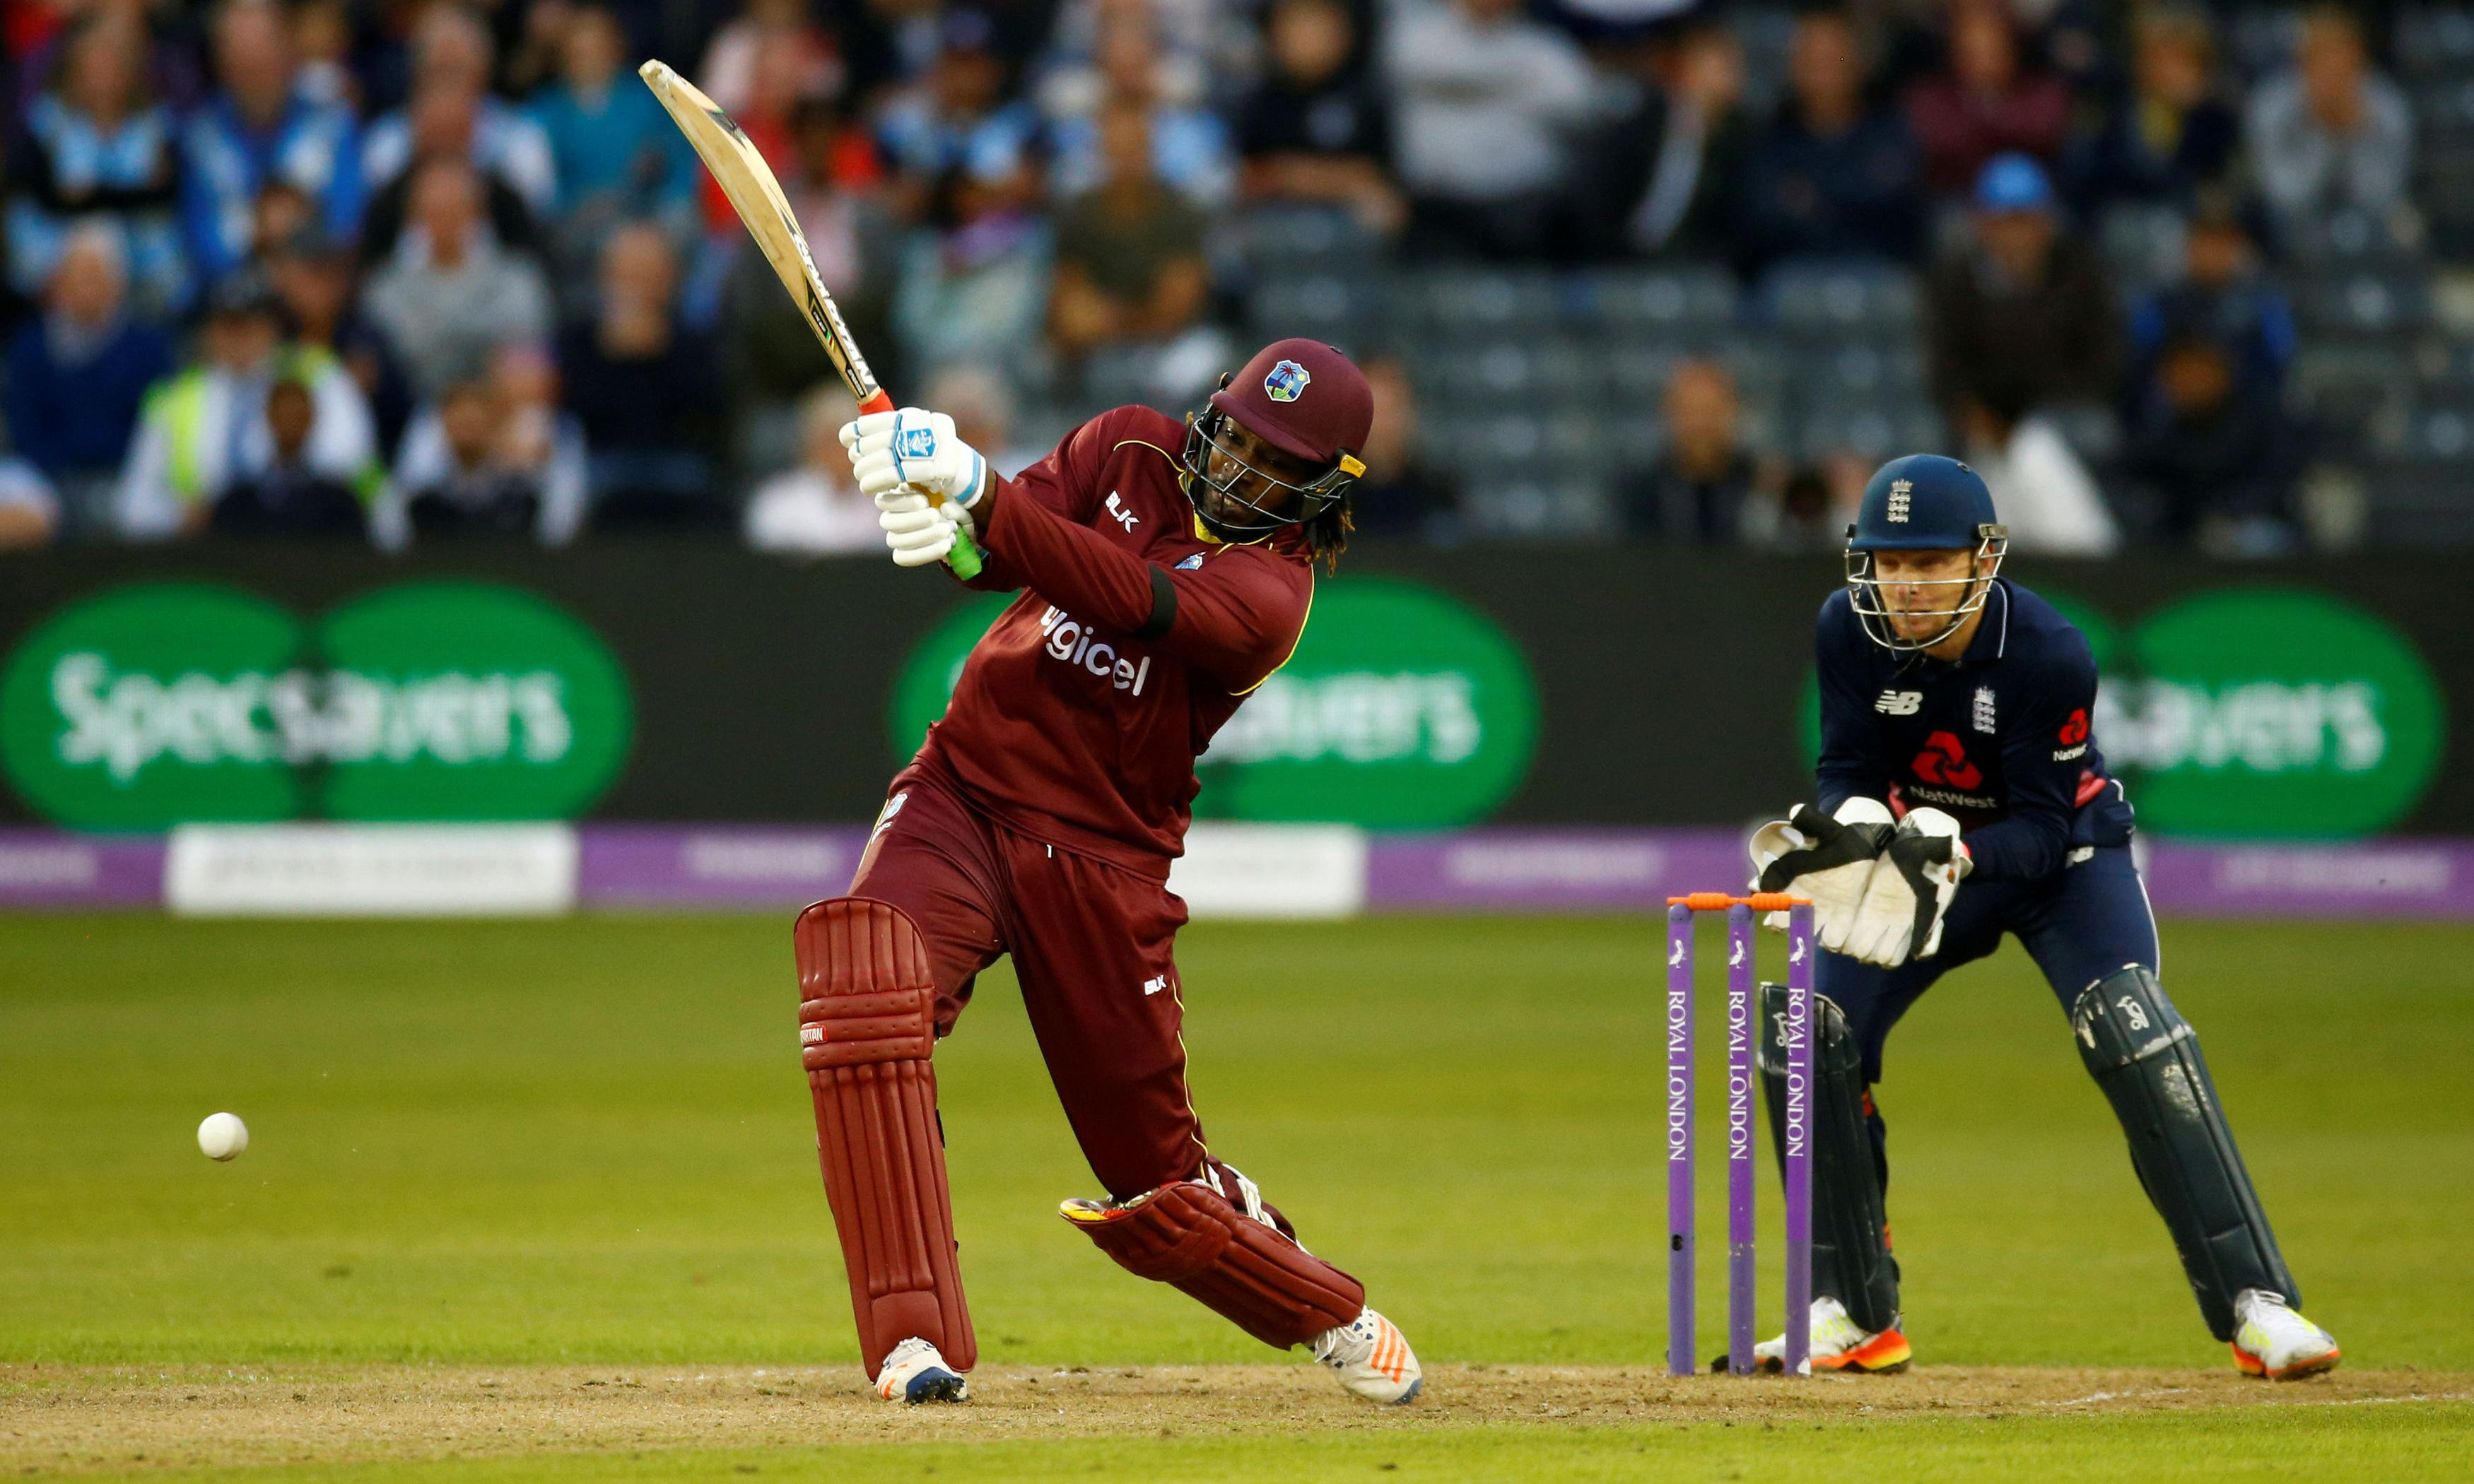 Chris Gayle declares himself 'greatest player' and wants Hundred invite